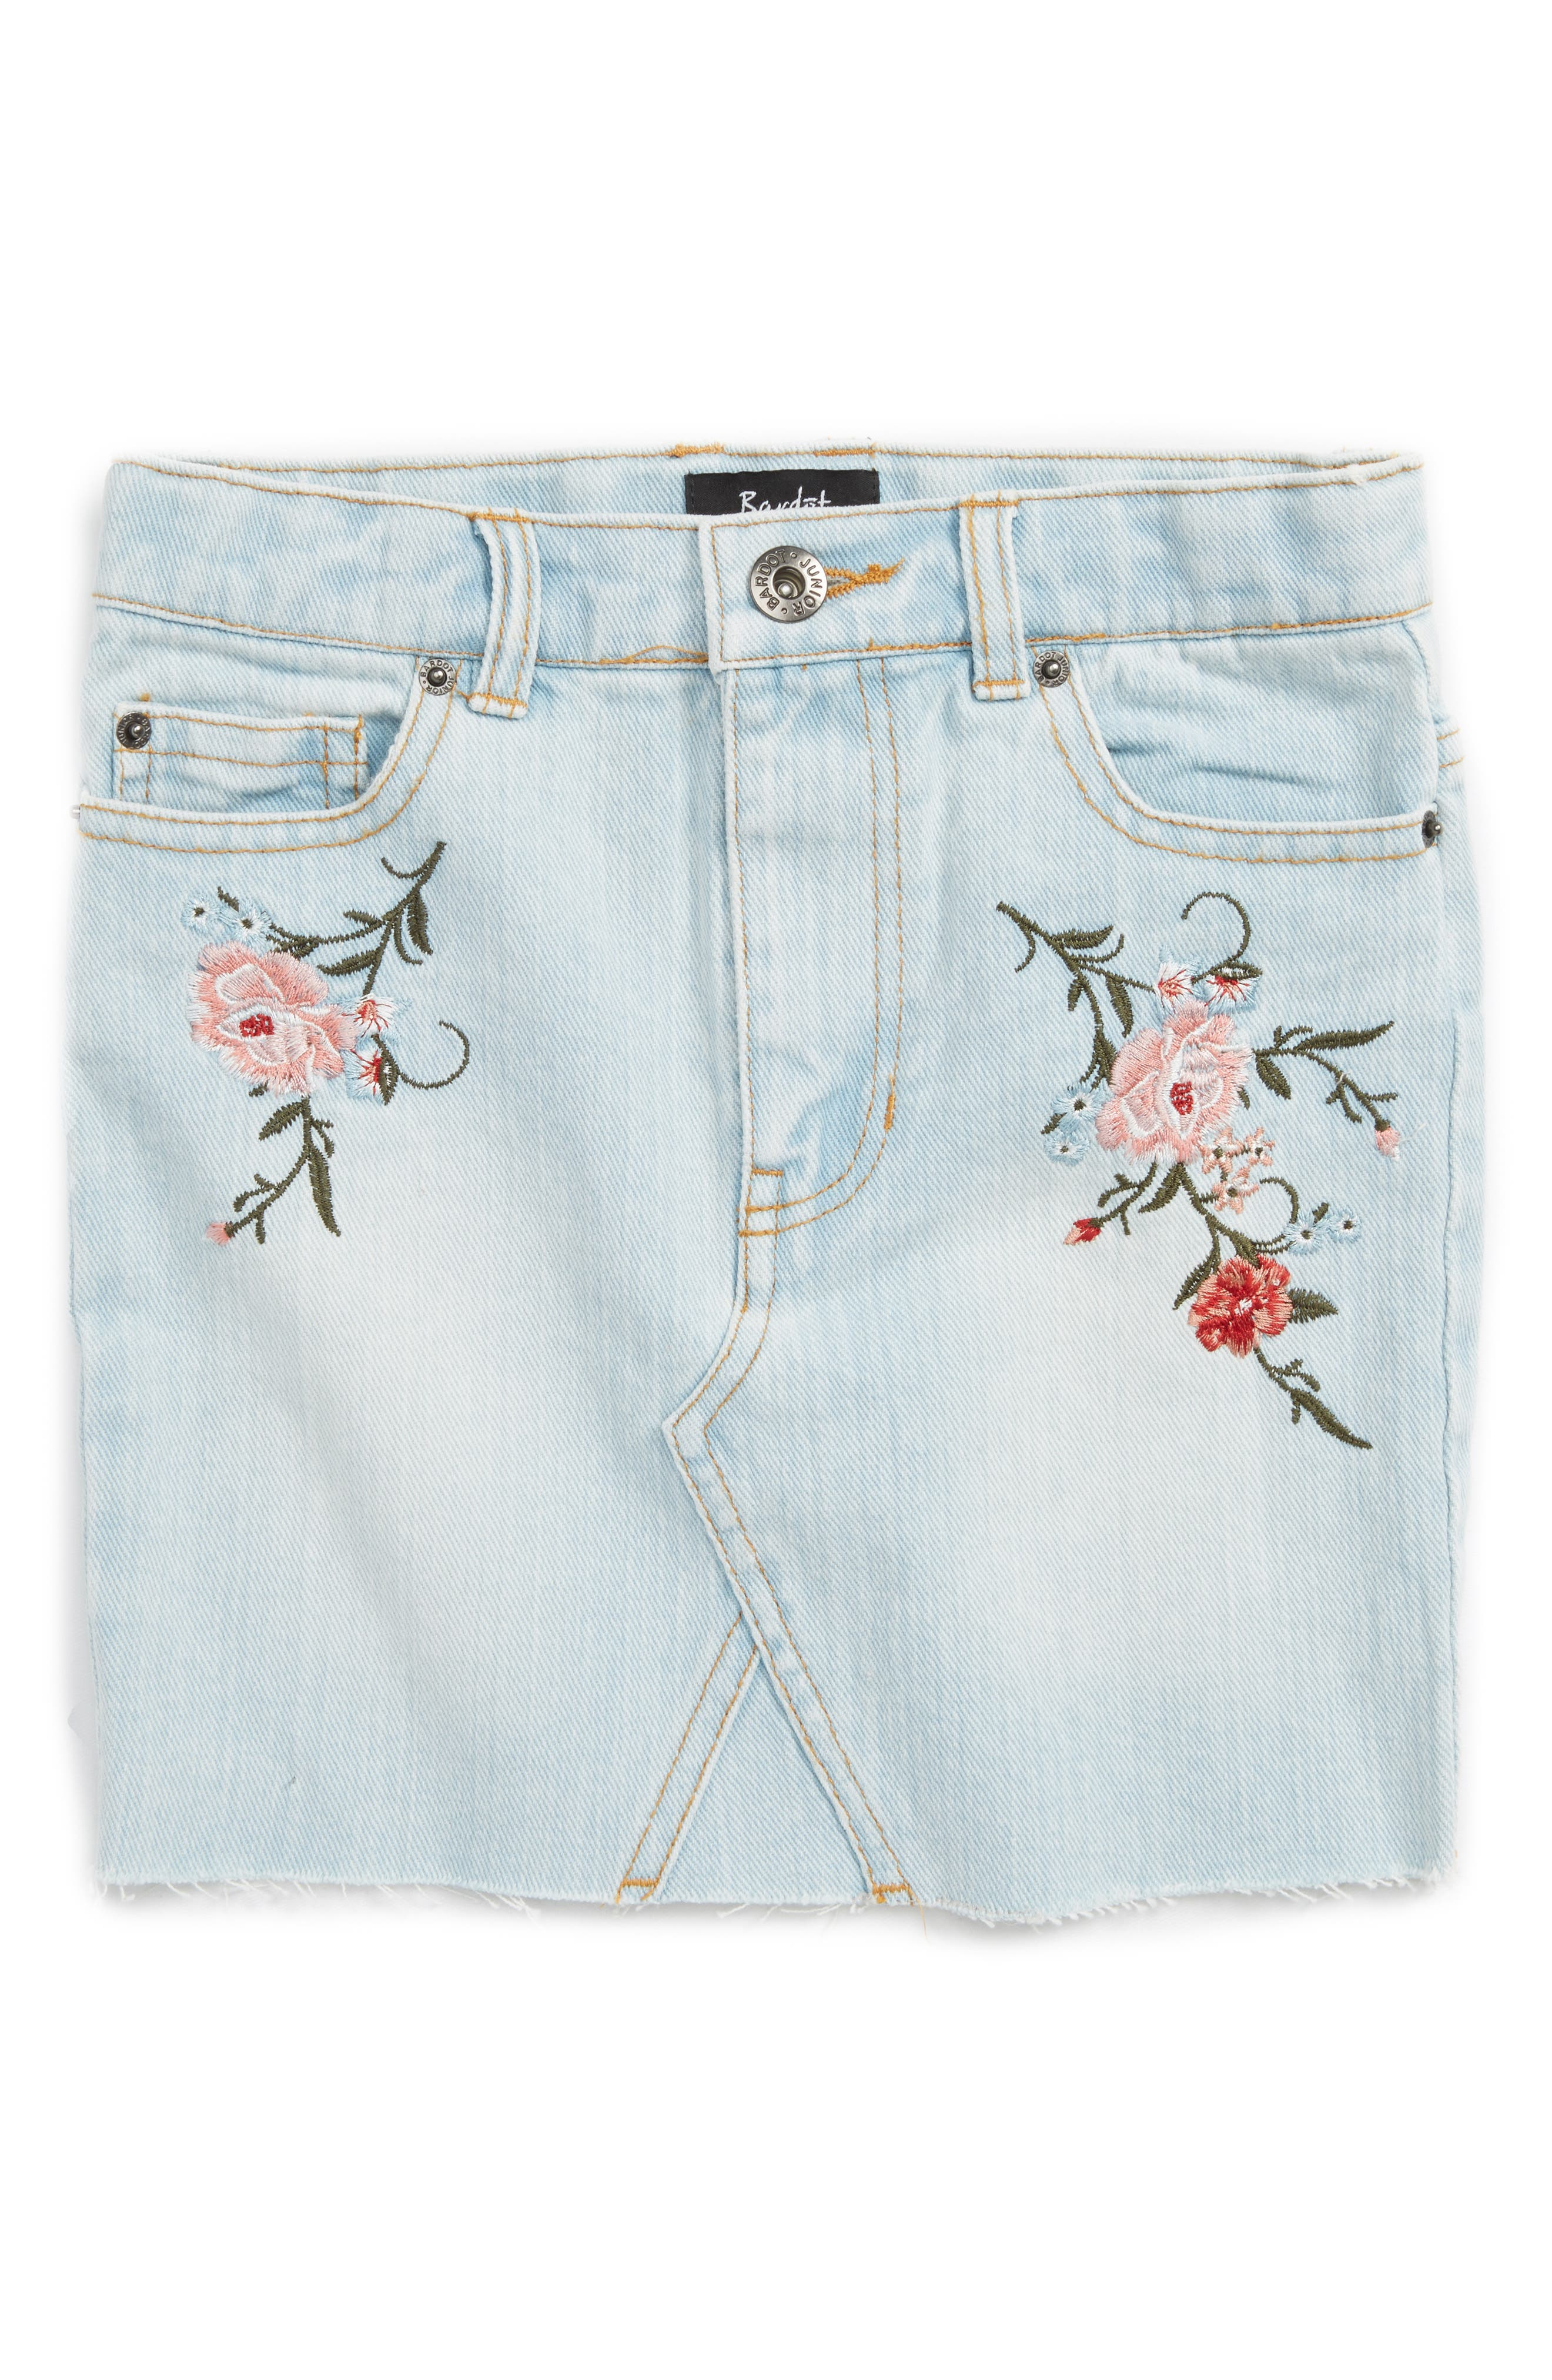 BARDOT JUNIOR Embroidered Denim Skirt